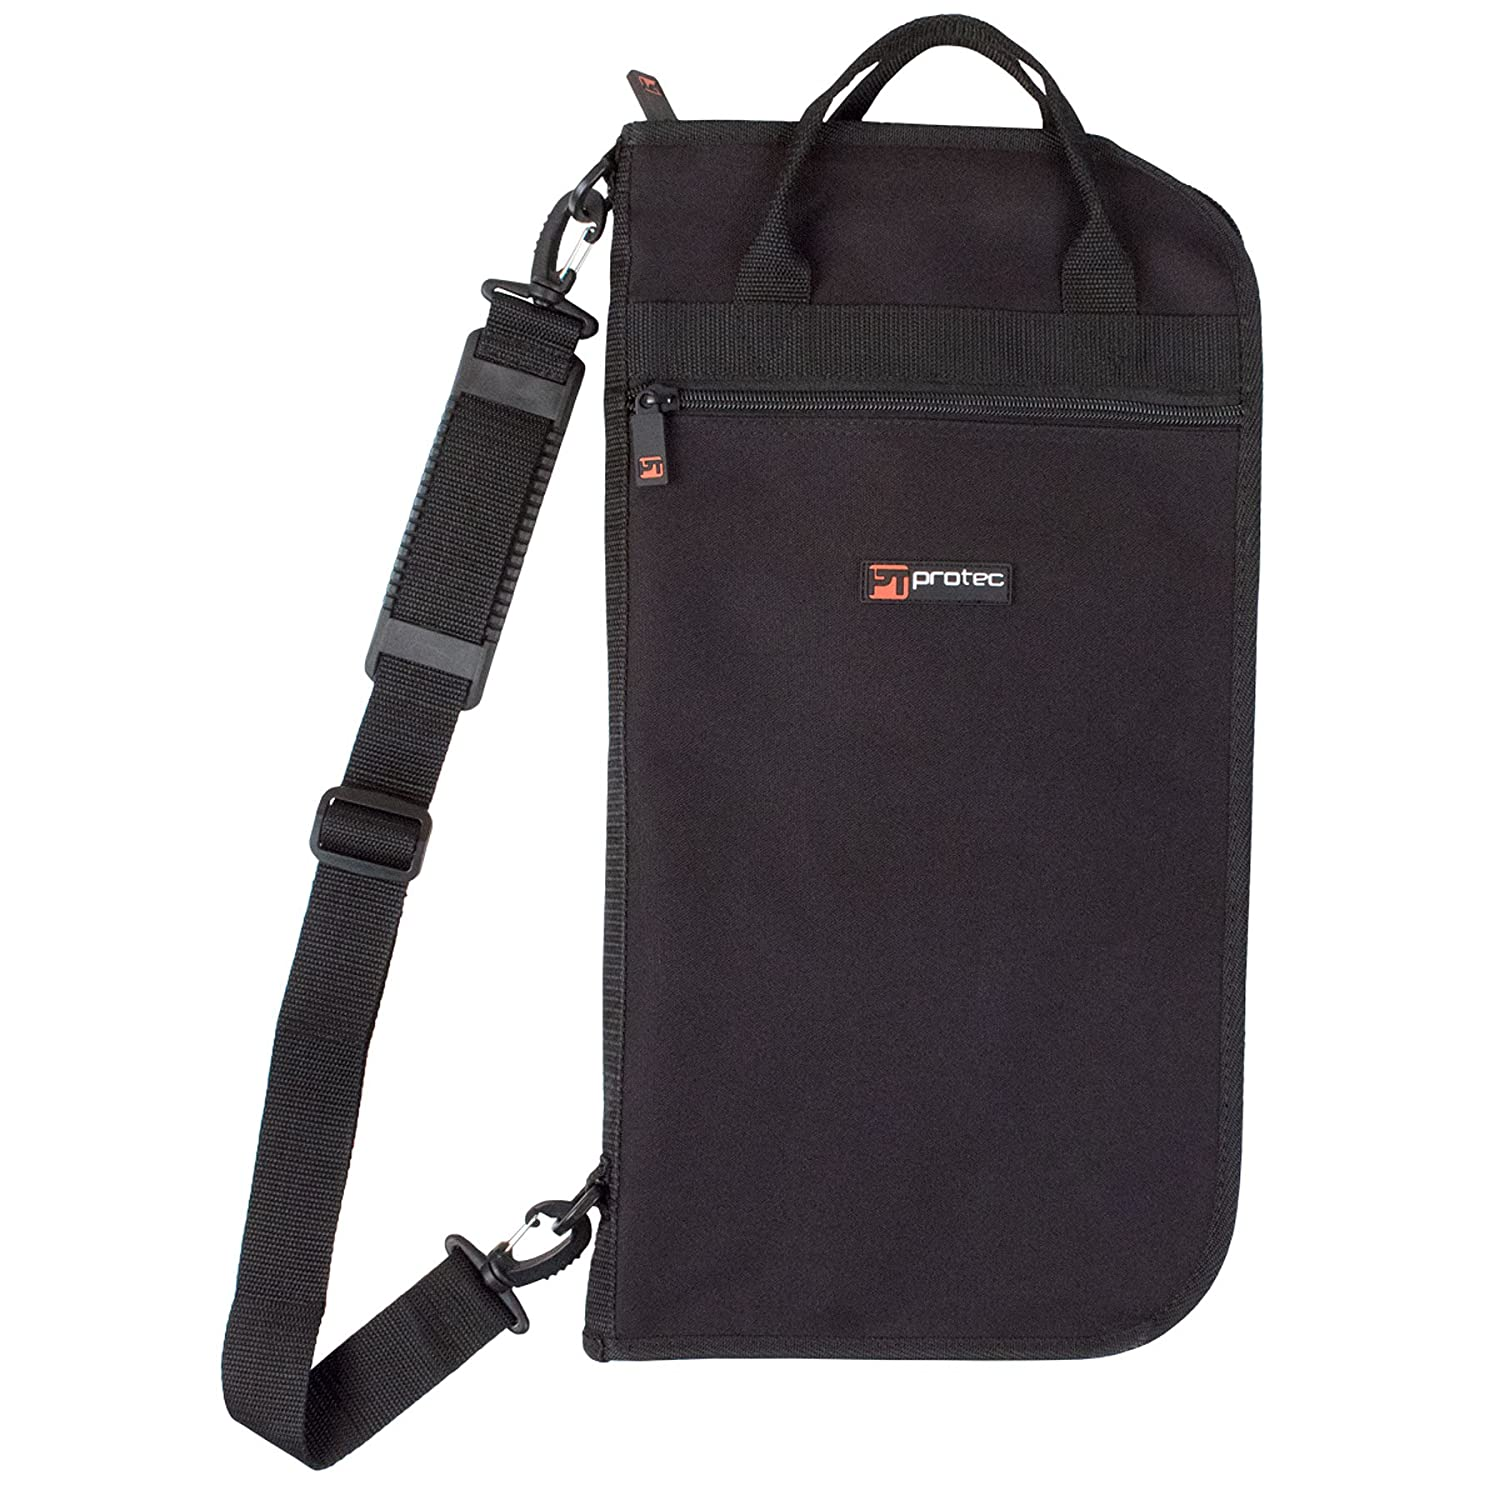 Protec Deluxe Series Drum Stick/Mallet Bag for Up to 20 Pairs of Sticks, Model # C340 Pro Tec